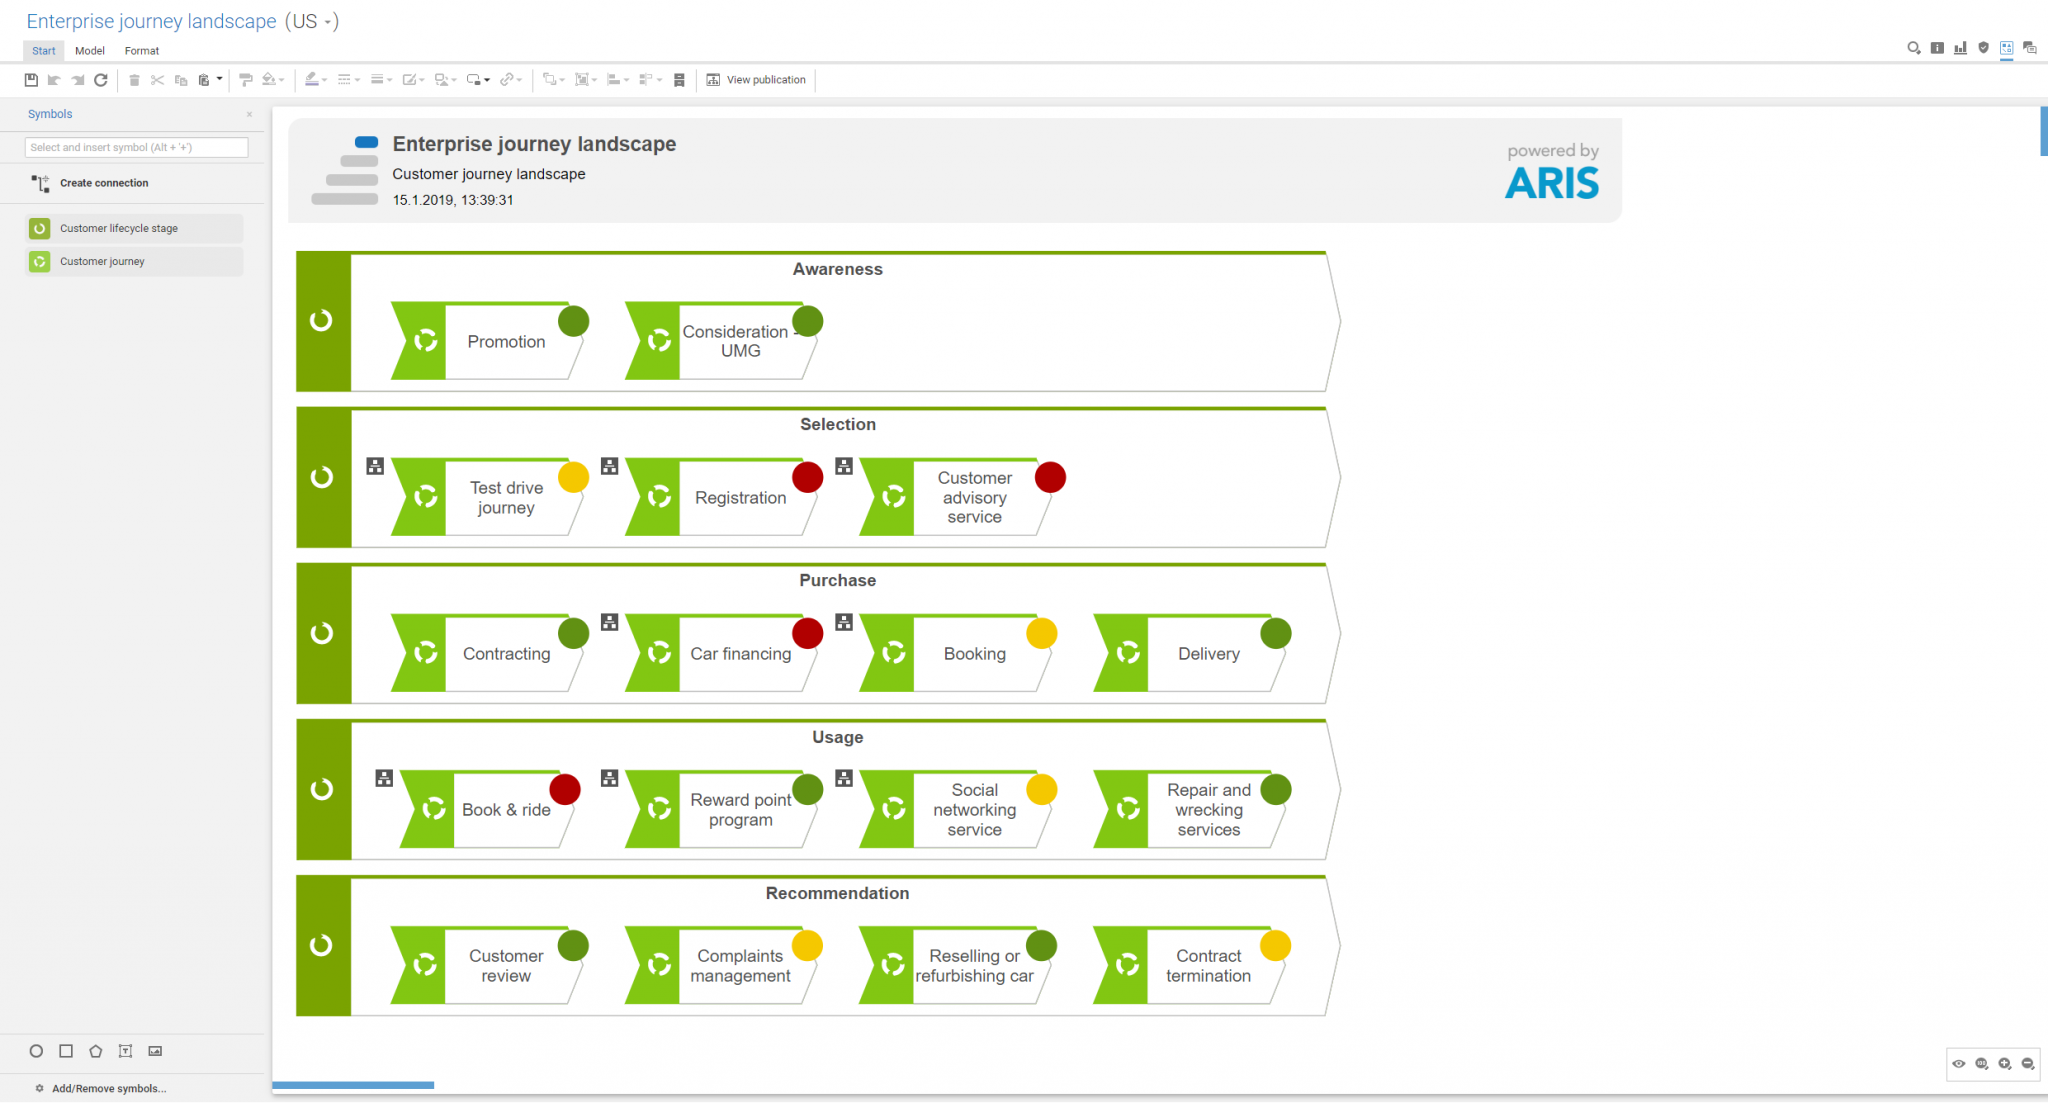 Customer Journey Landscape in ARIS